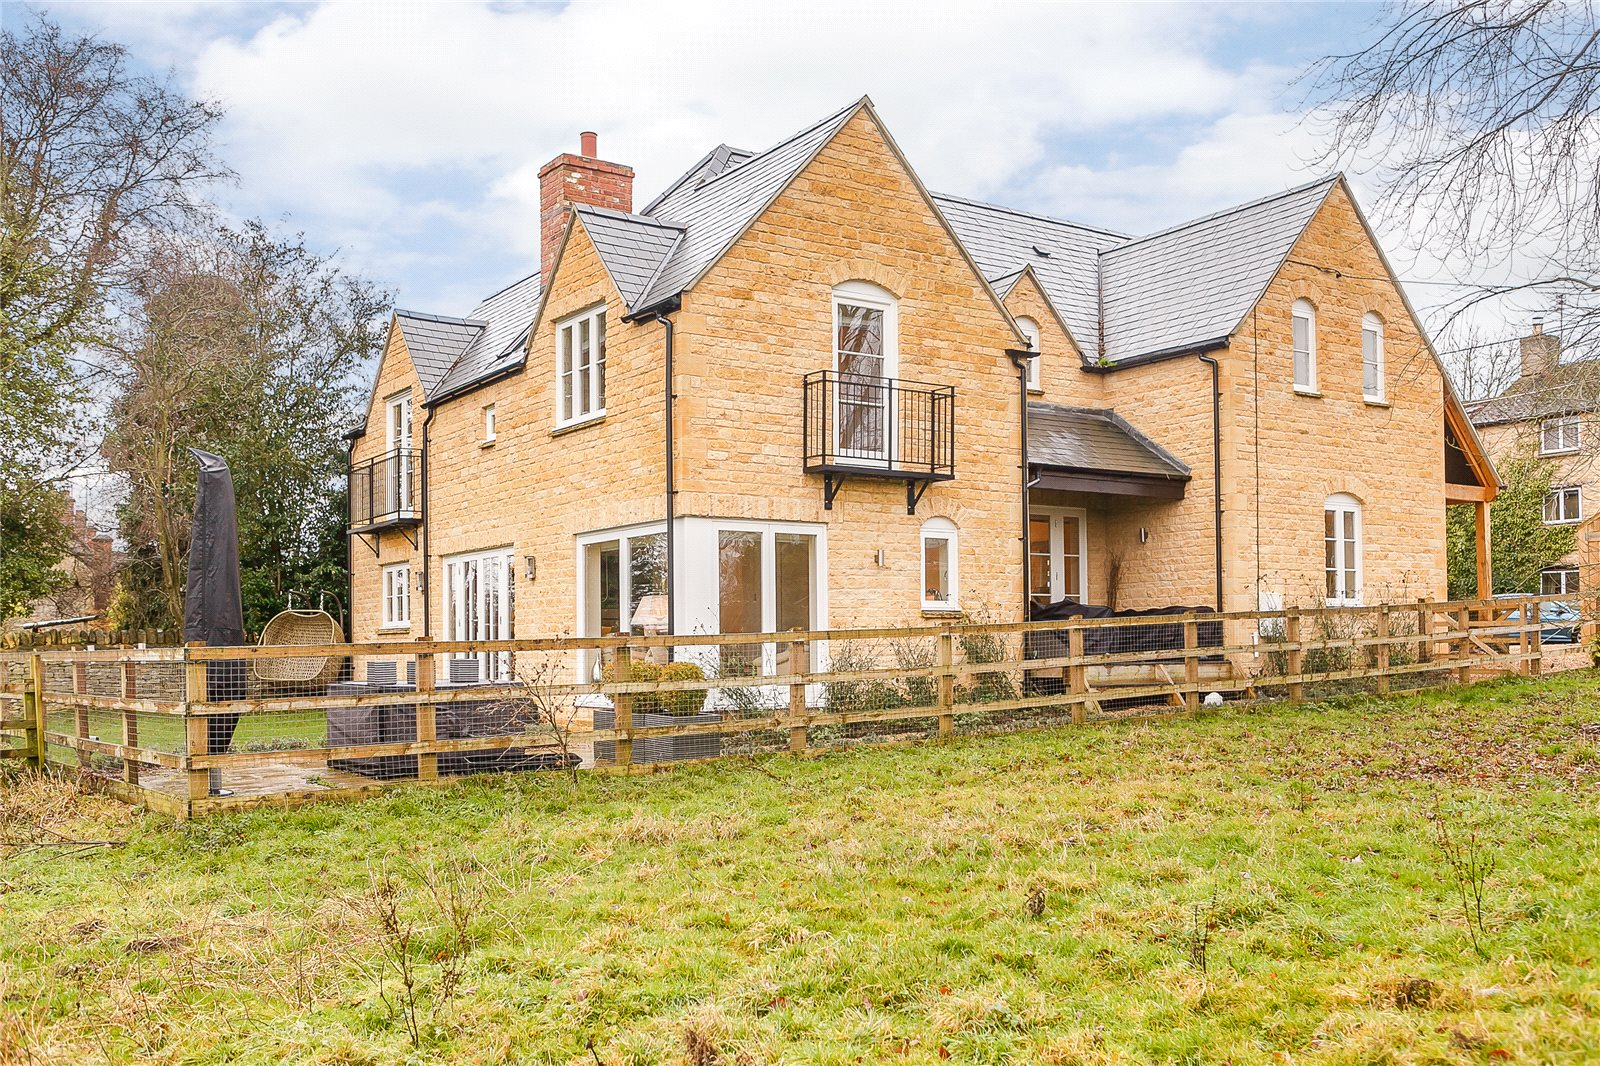 Single Family Home for Sale at Chapel Lane, Enstone, Chipping Norton, Oxfordshire, OX7 Chipping Norton, England